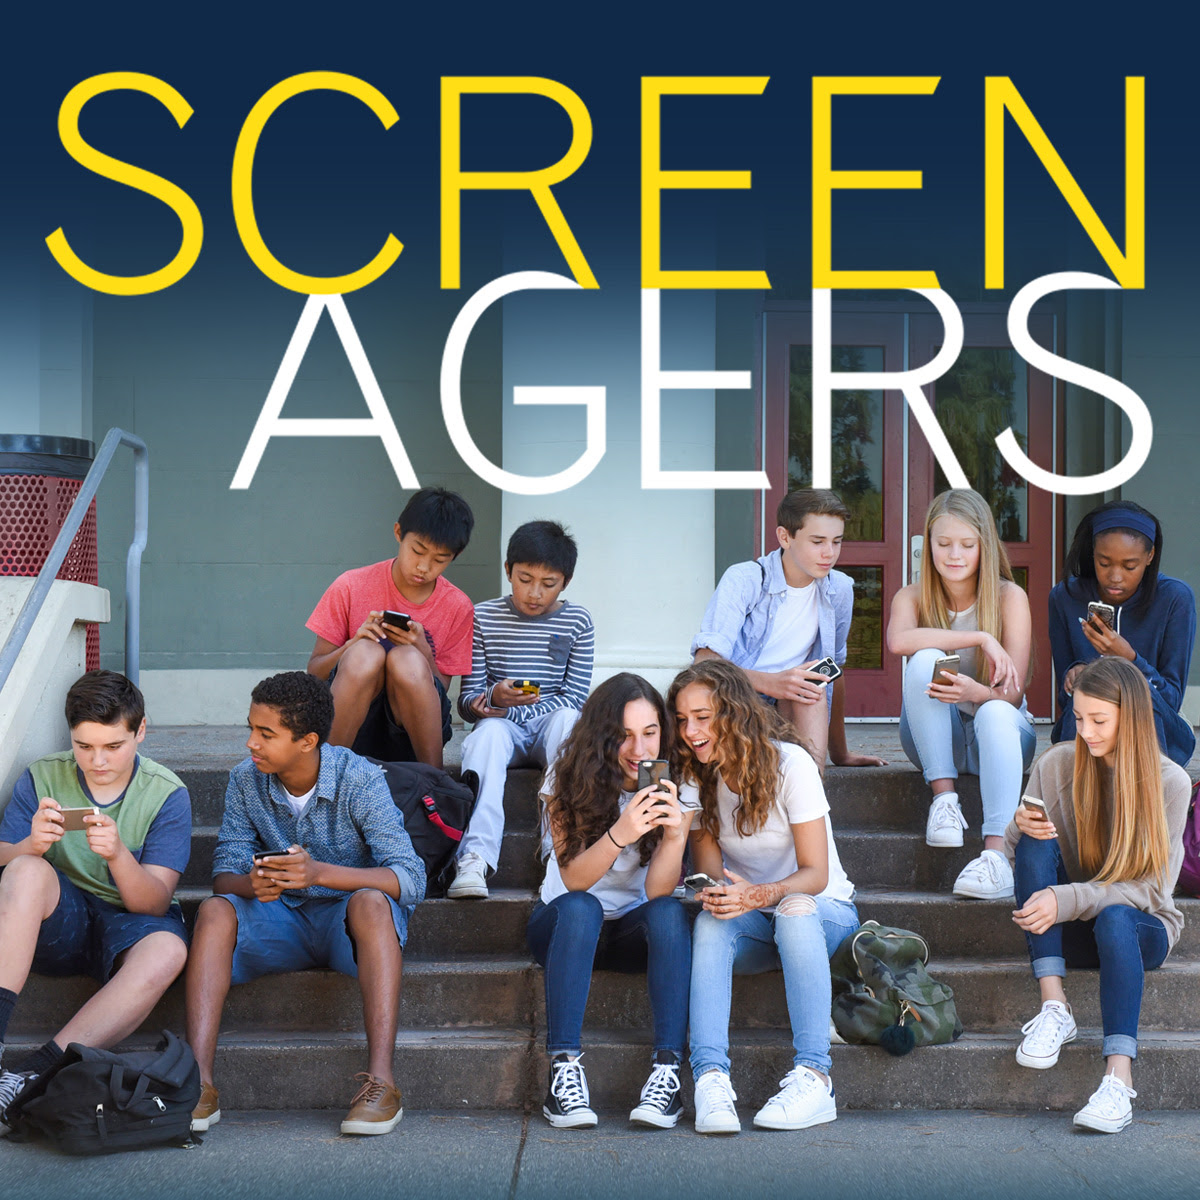 Screenagers Film Presented By Laura Chandlee Showing Wahlert